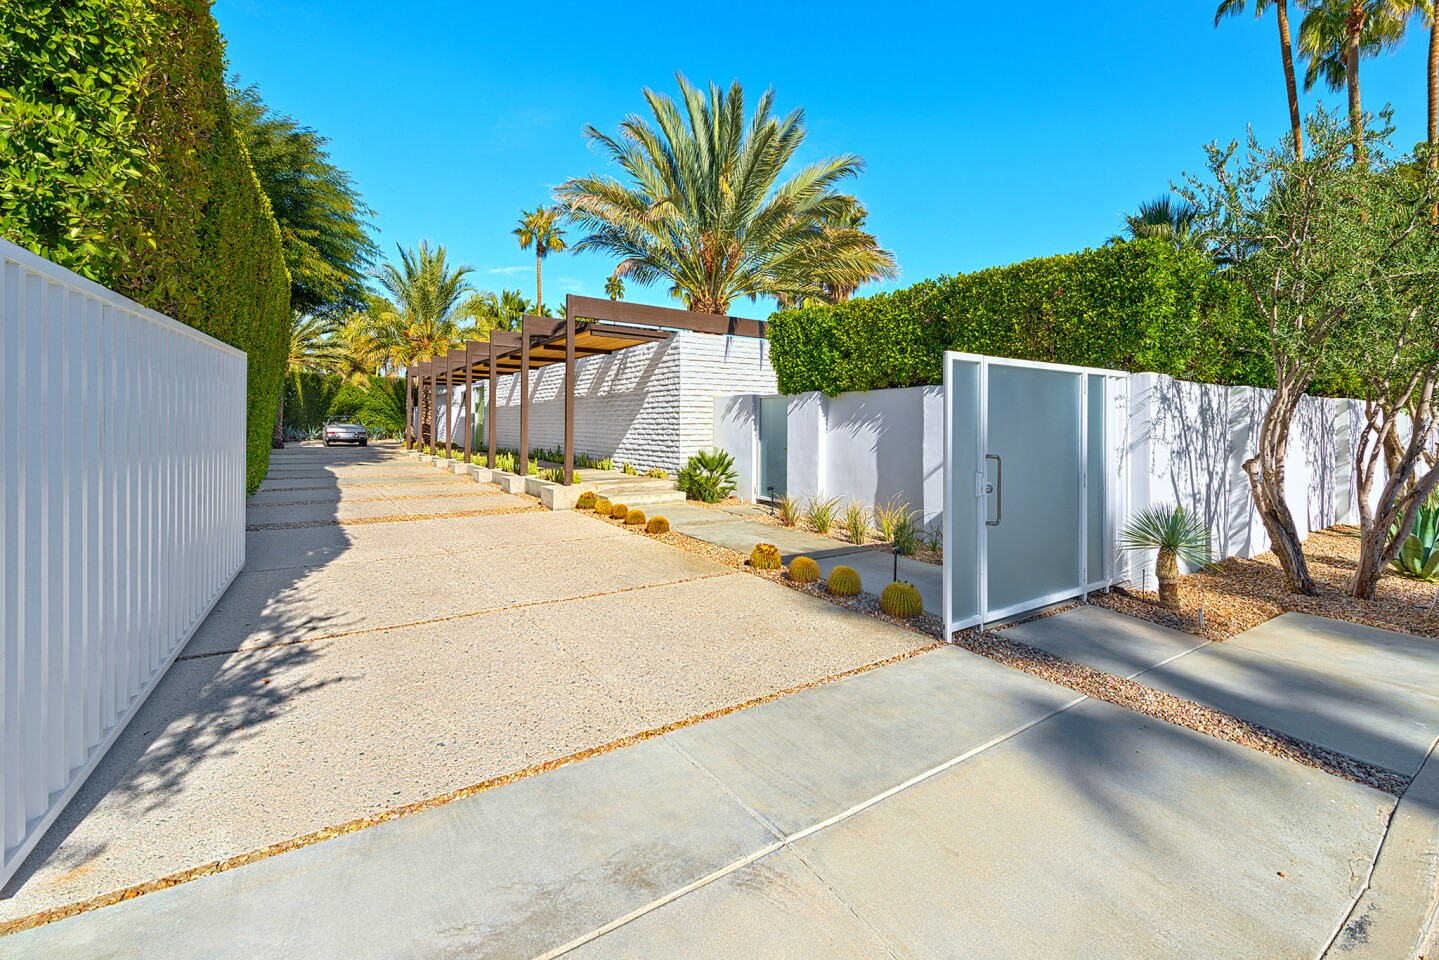 The third-of-an-acre property is walled and gated. Tall hedges provide further privacy.